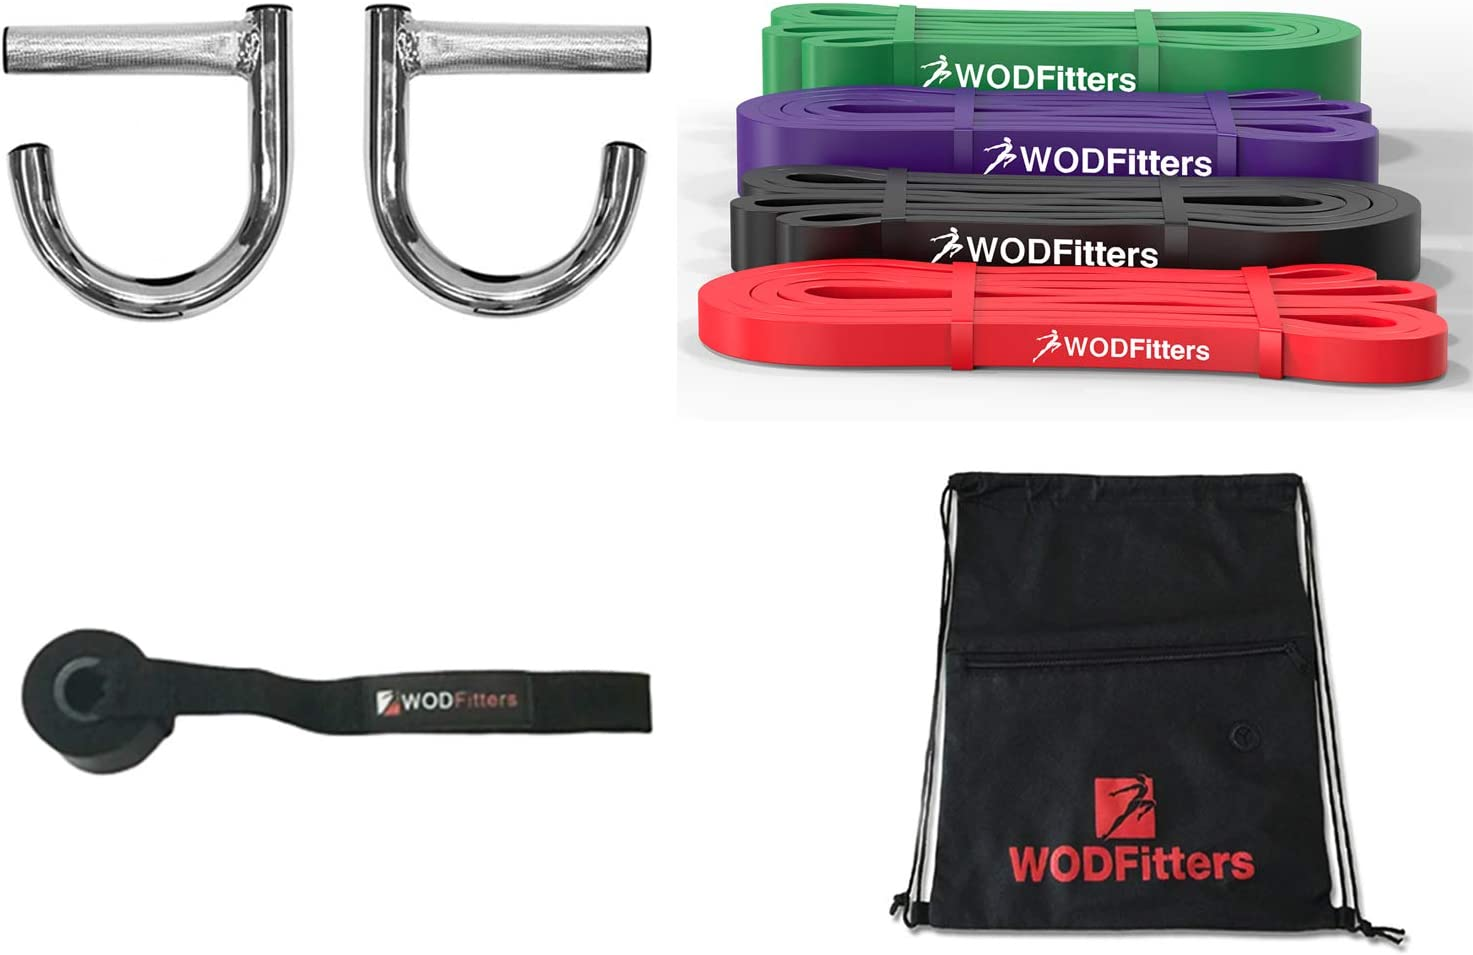 WODFitters Home Gym with 4 Resistance Bands - Full Body Workout at Home and While Traveling